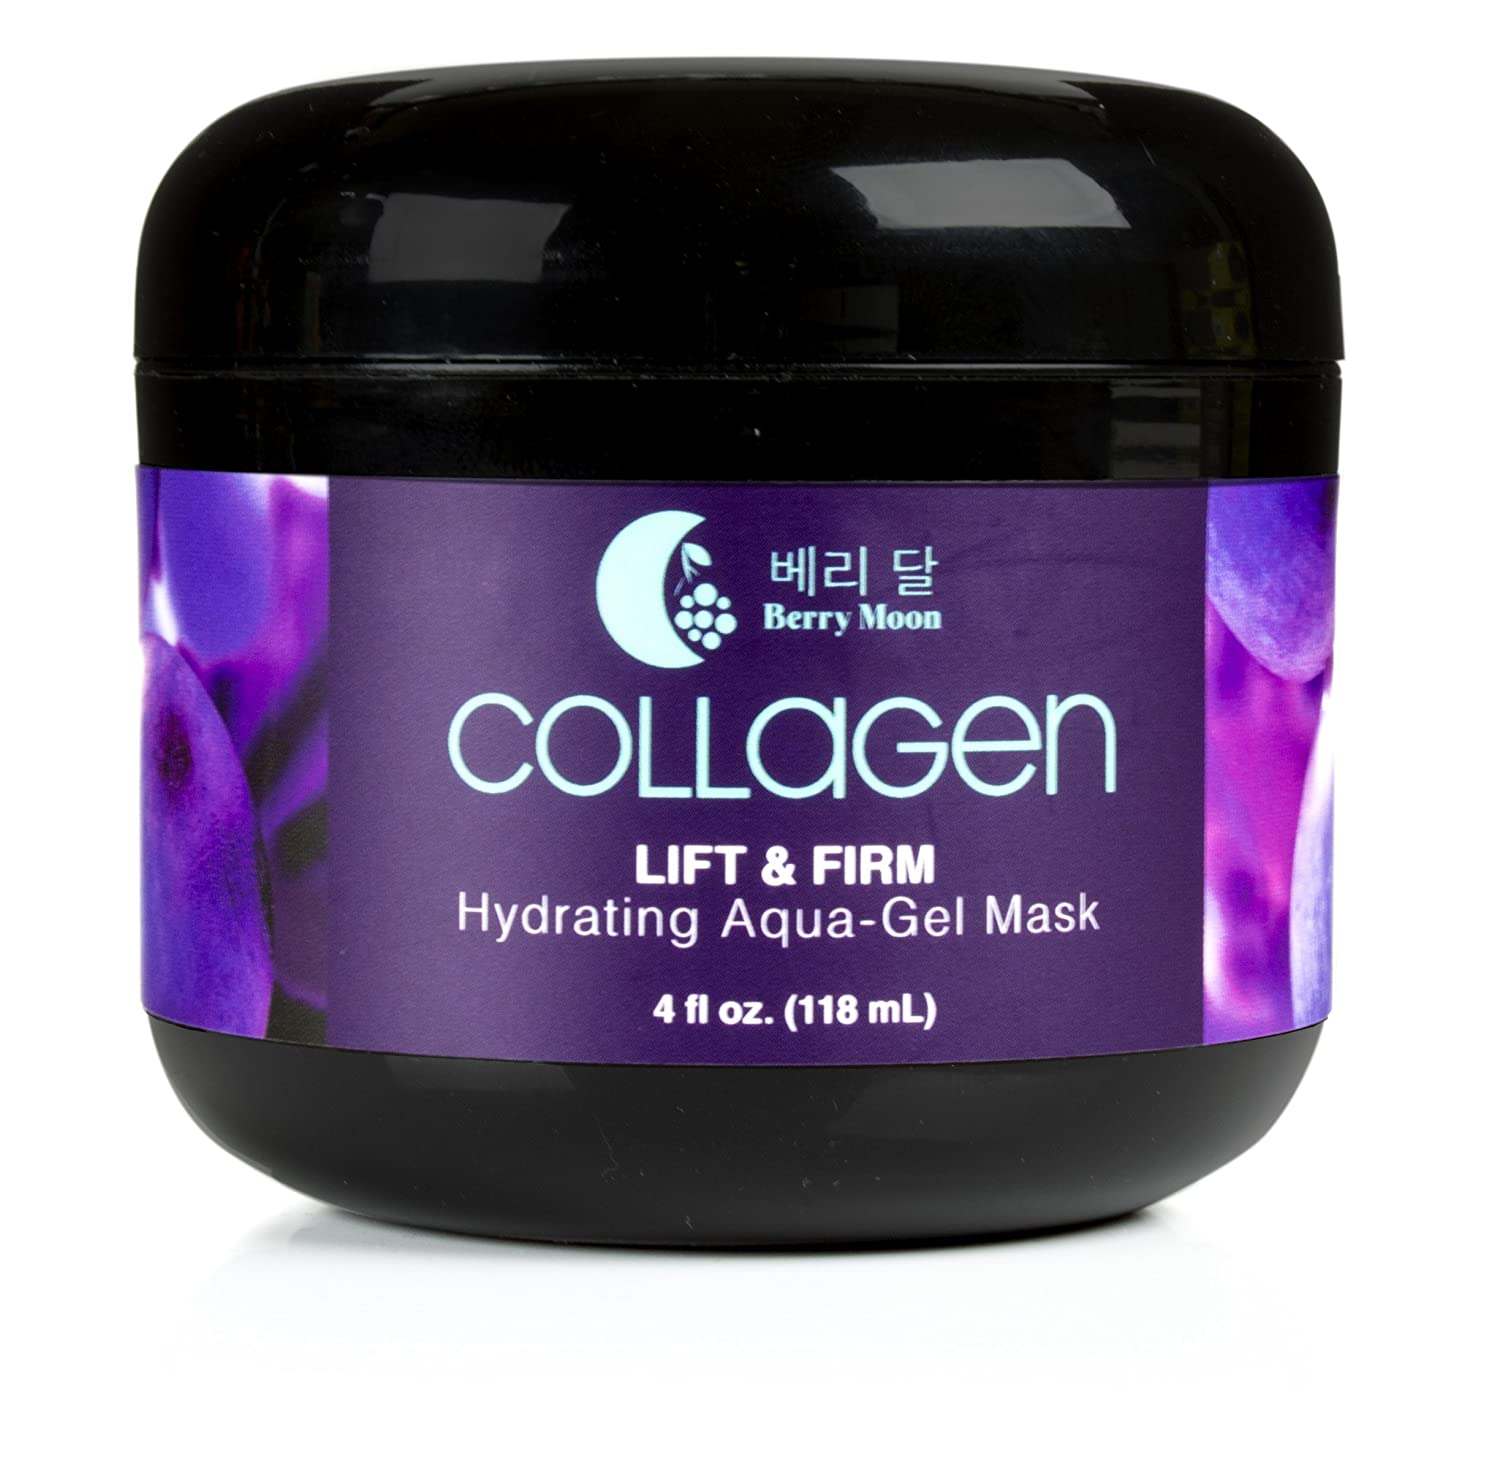 Berry Moon Anti-Aging Collagen Mask for hydration, dark spots, and enlarged pores. With rosewater and coconut oil. Large 4oz jar.